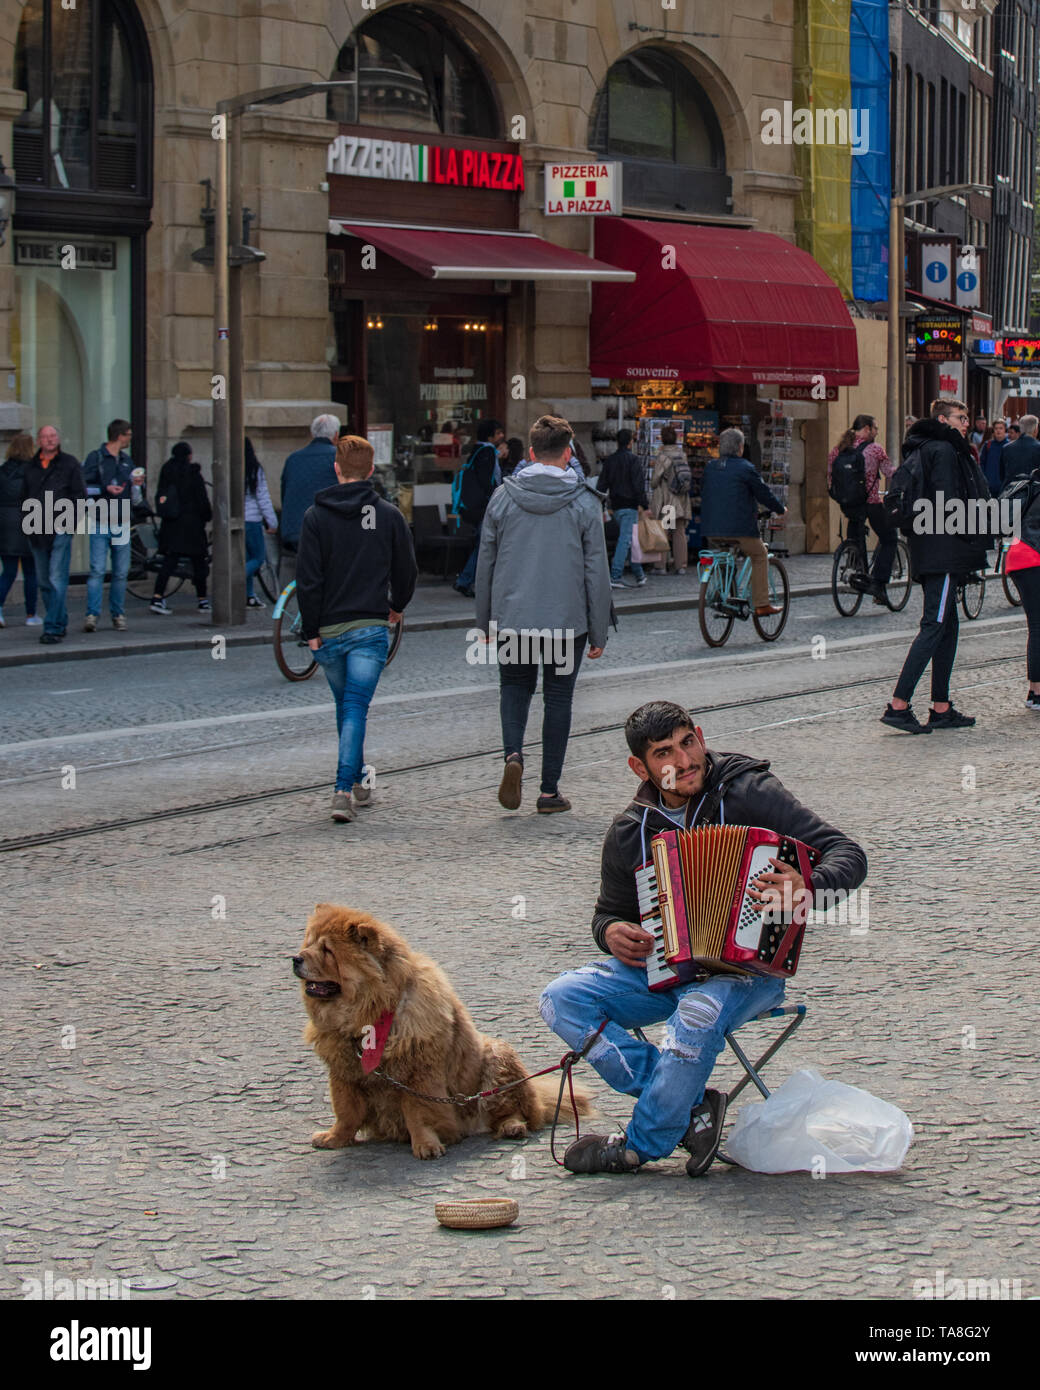 Amsterdam street performer in Dam Square - an accordion player / busker busking outside of the Royal Palace of Amsterdam - Dutch street musician - Stock Image